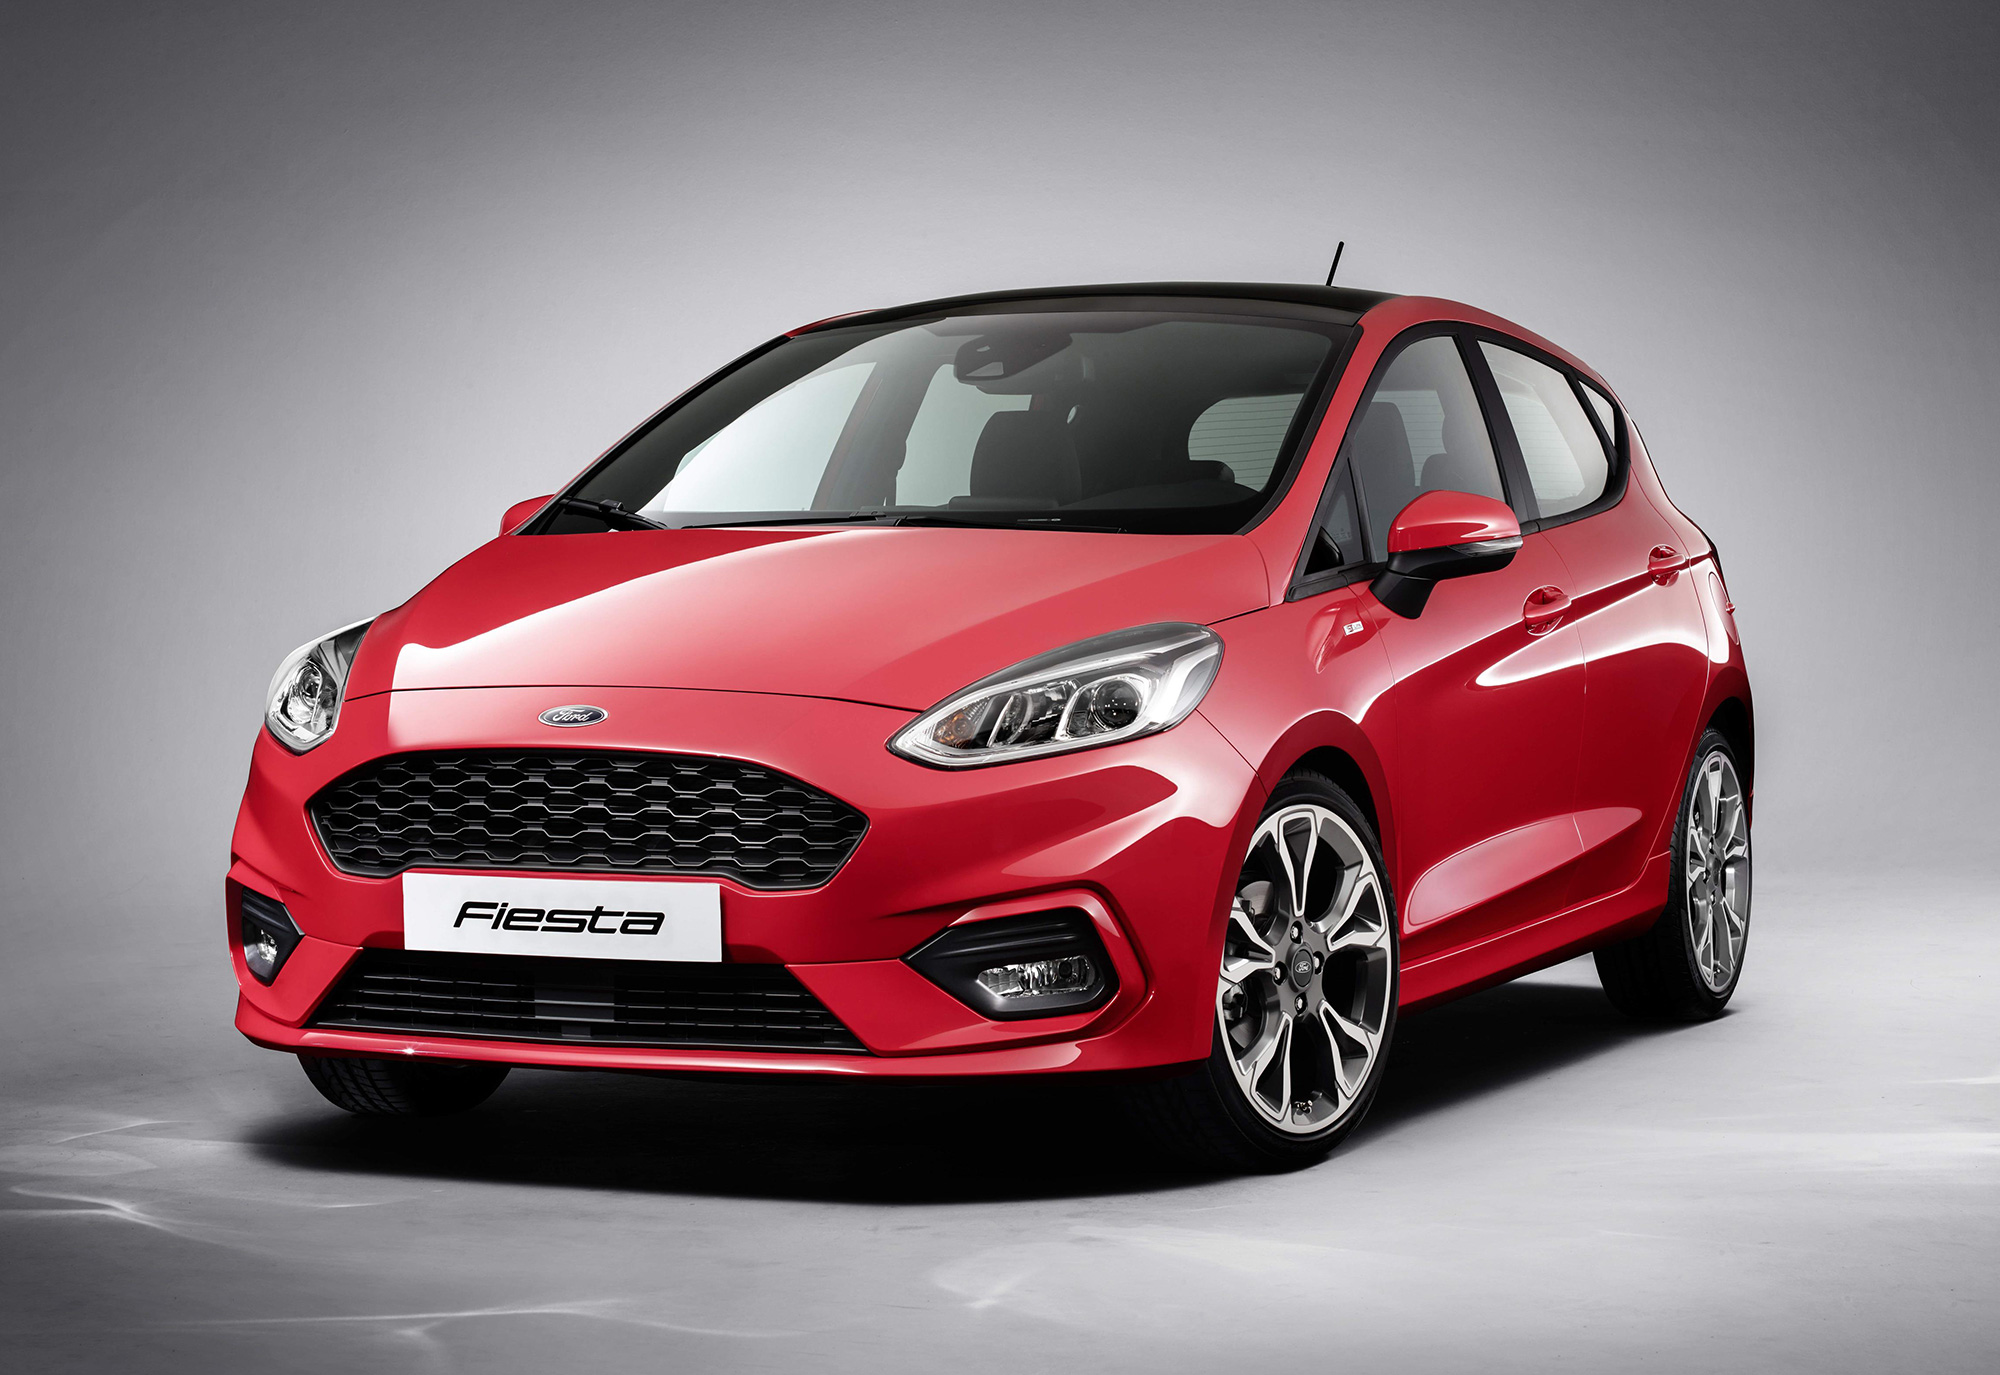 The-Ford-Fiesta-makes-its-UK-debut-at-Goodwood-FoS.jpg